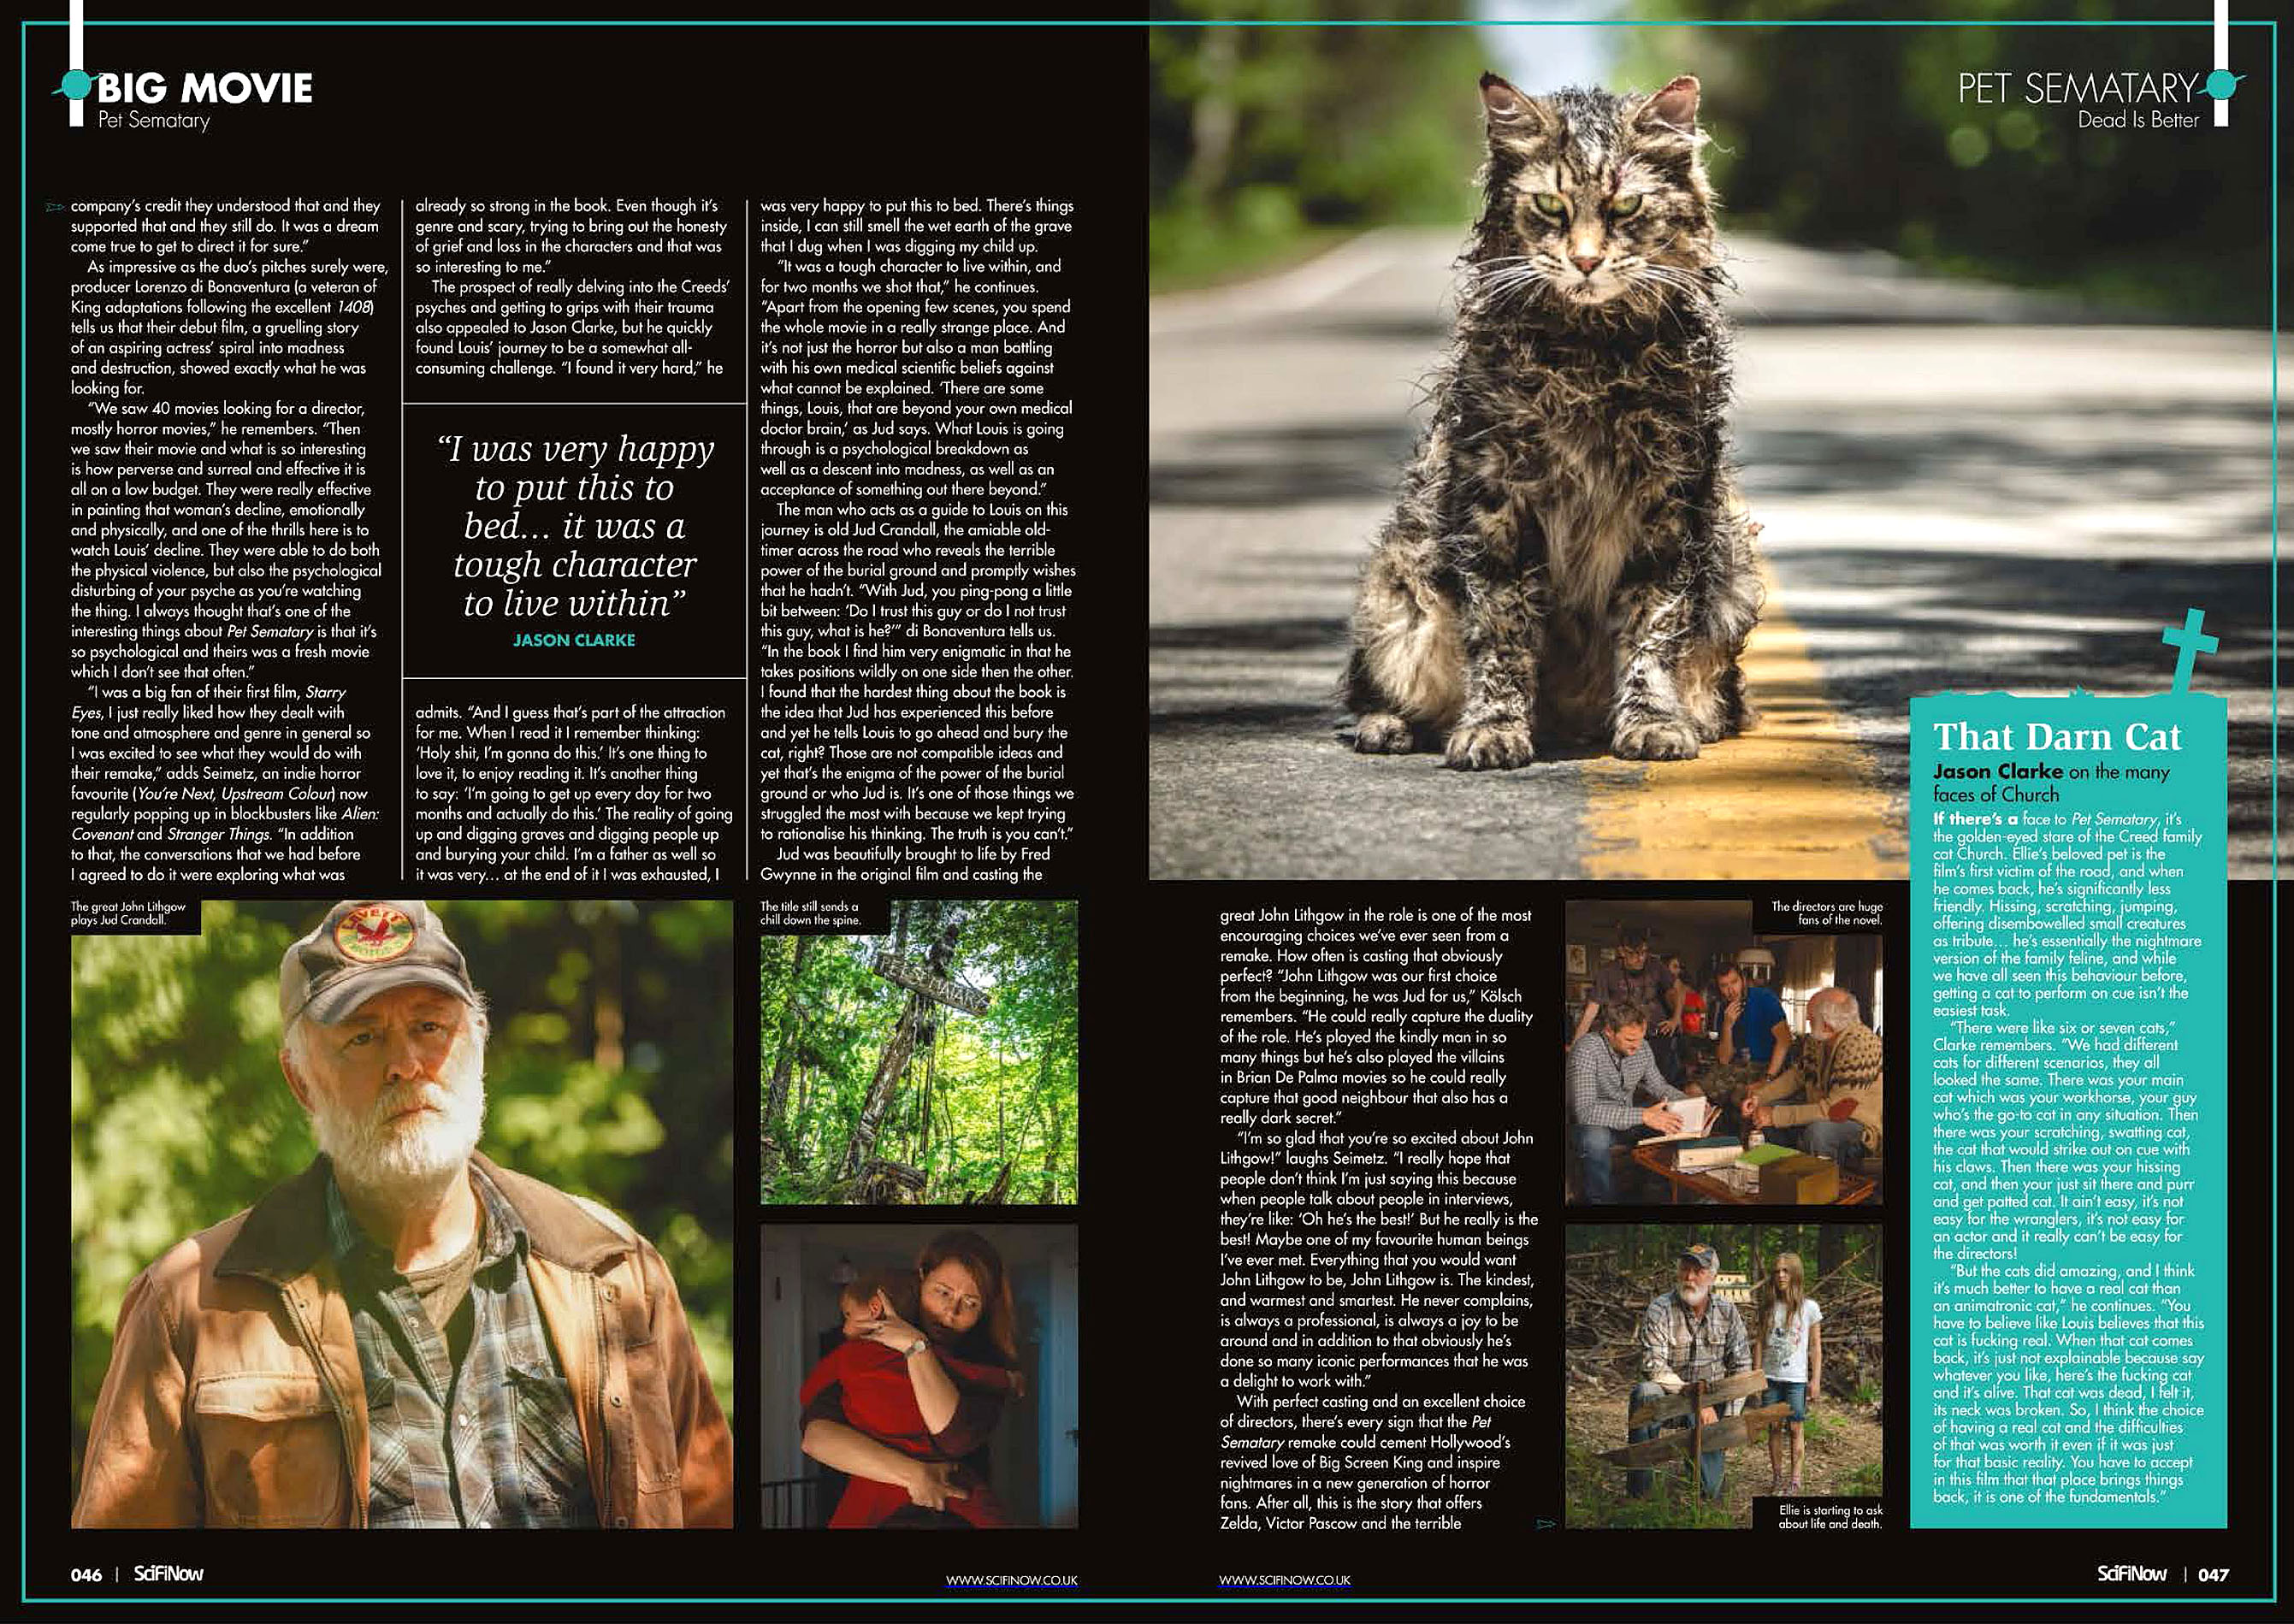 SciFi Now 156 2019 Pet Cematary 02.jpg